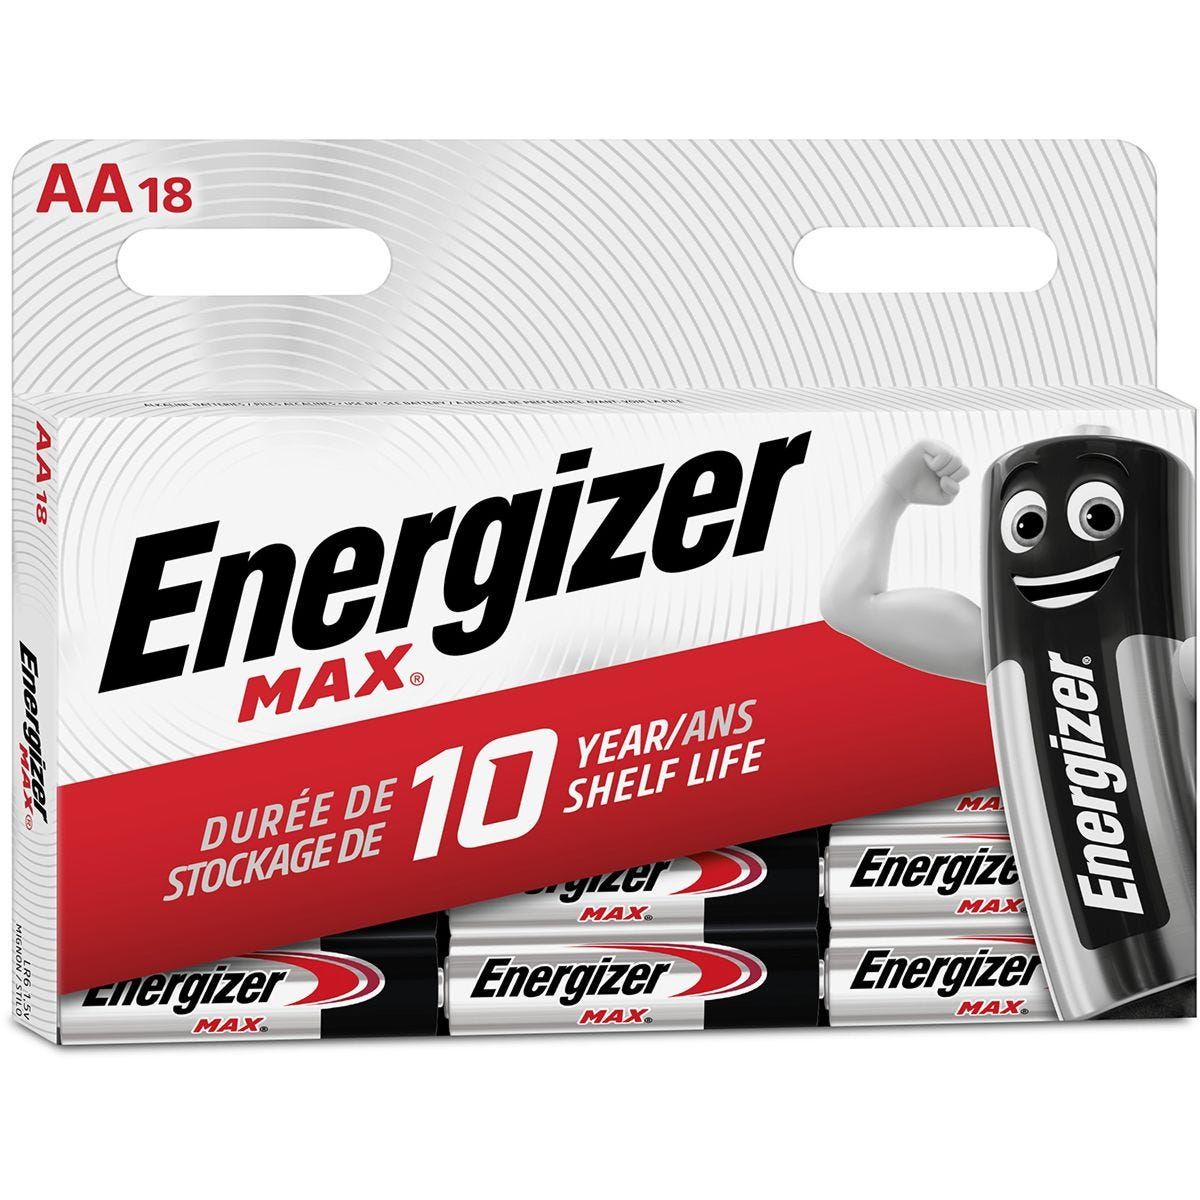 Energizer Max AA Batteries - Pack of 18